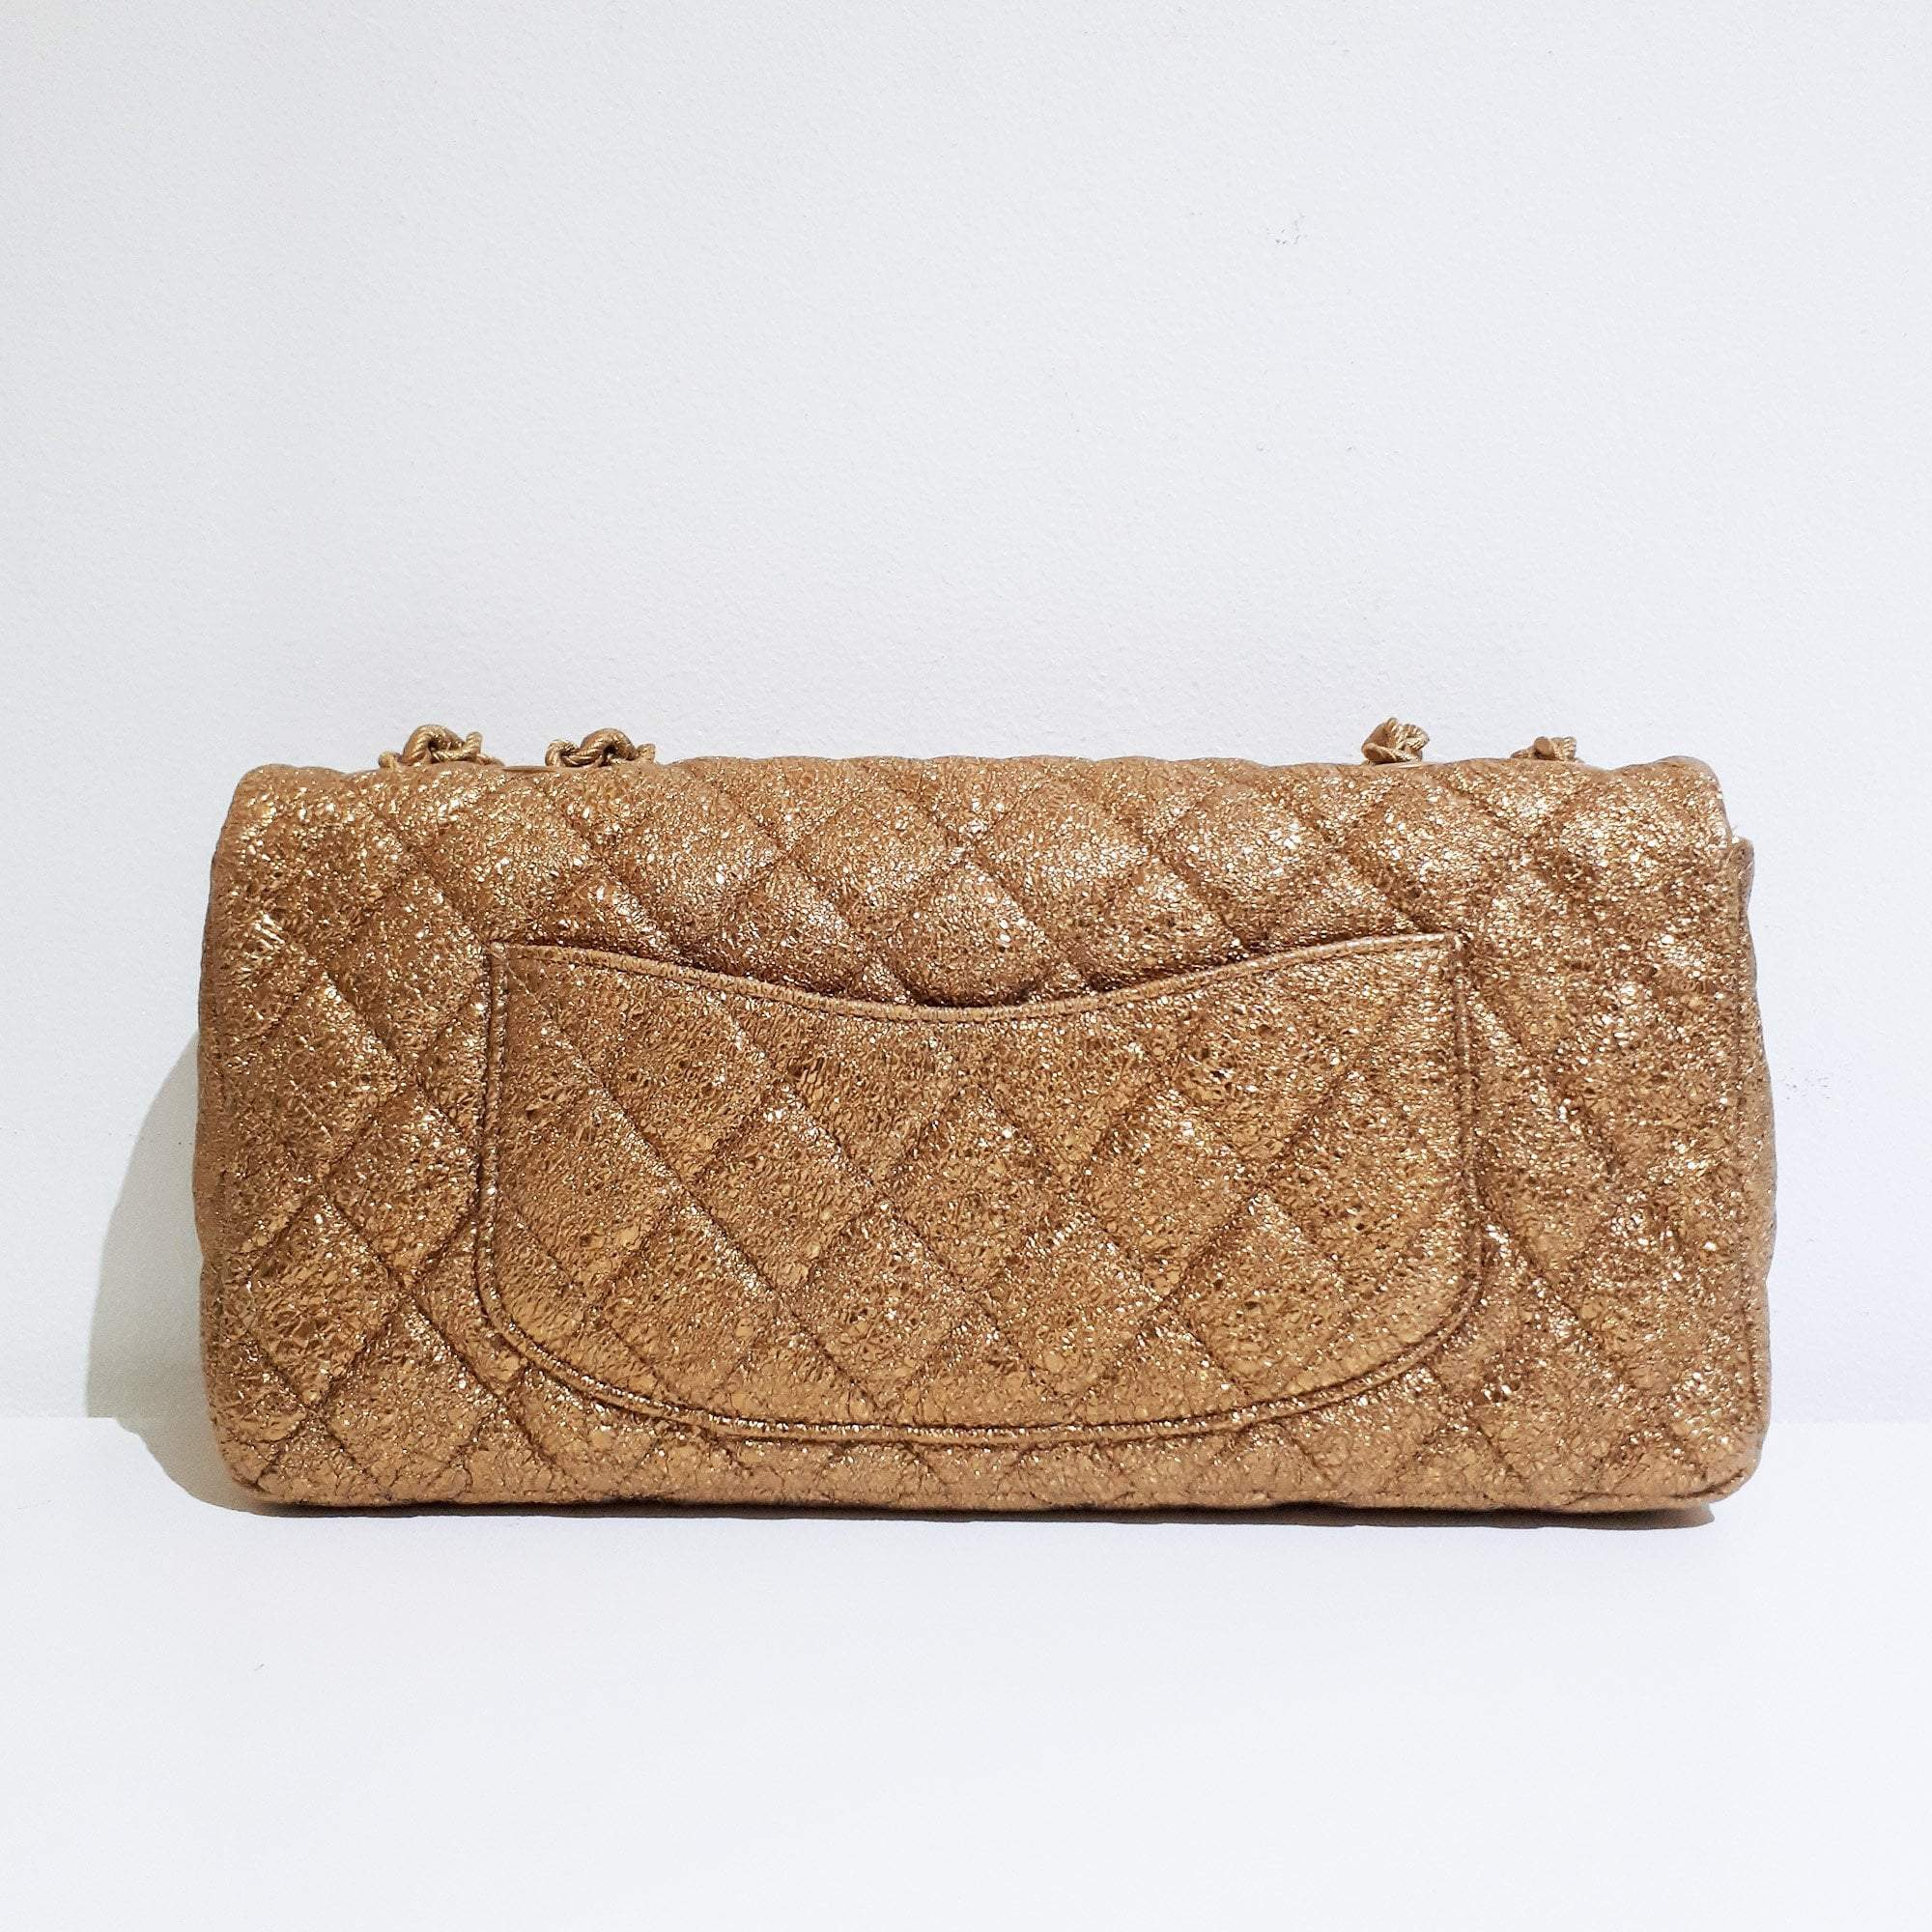 Chanel Metallic Gold Flap Bag